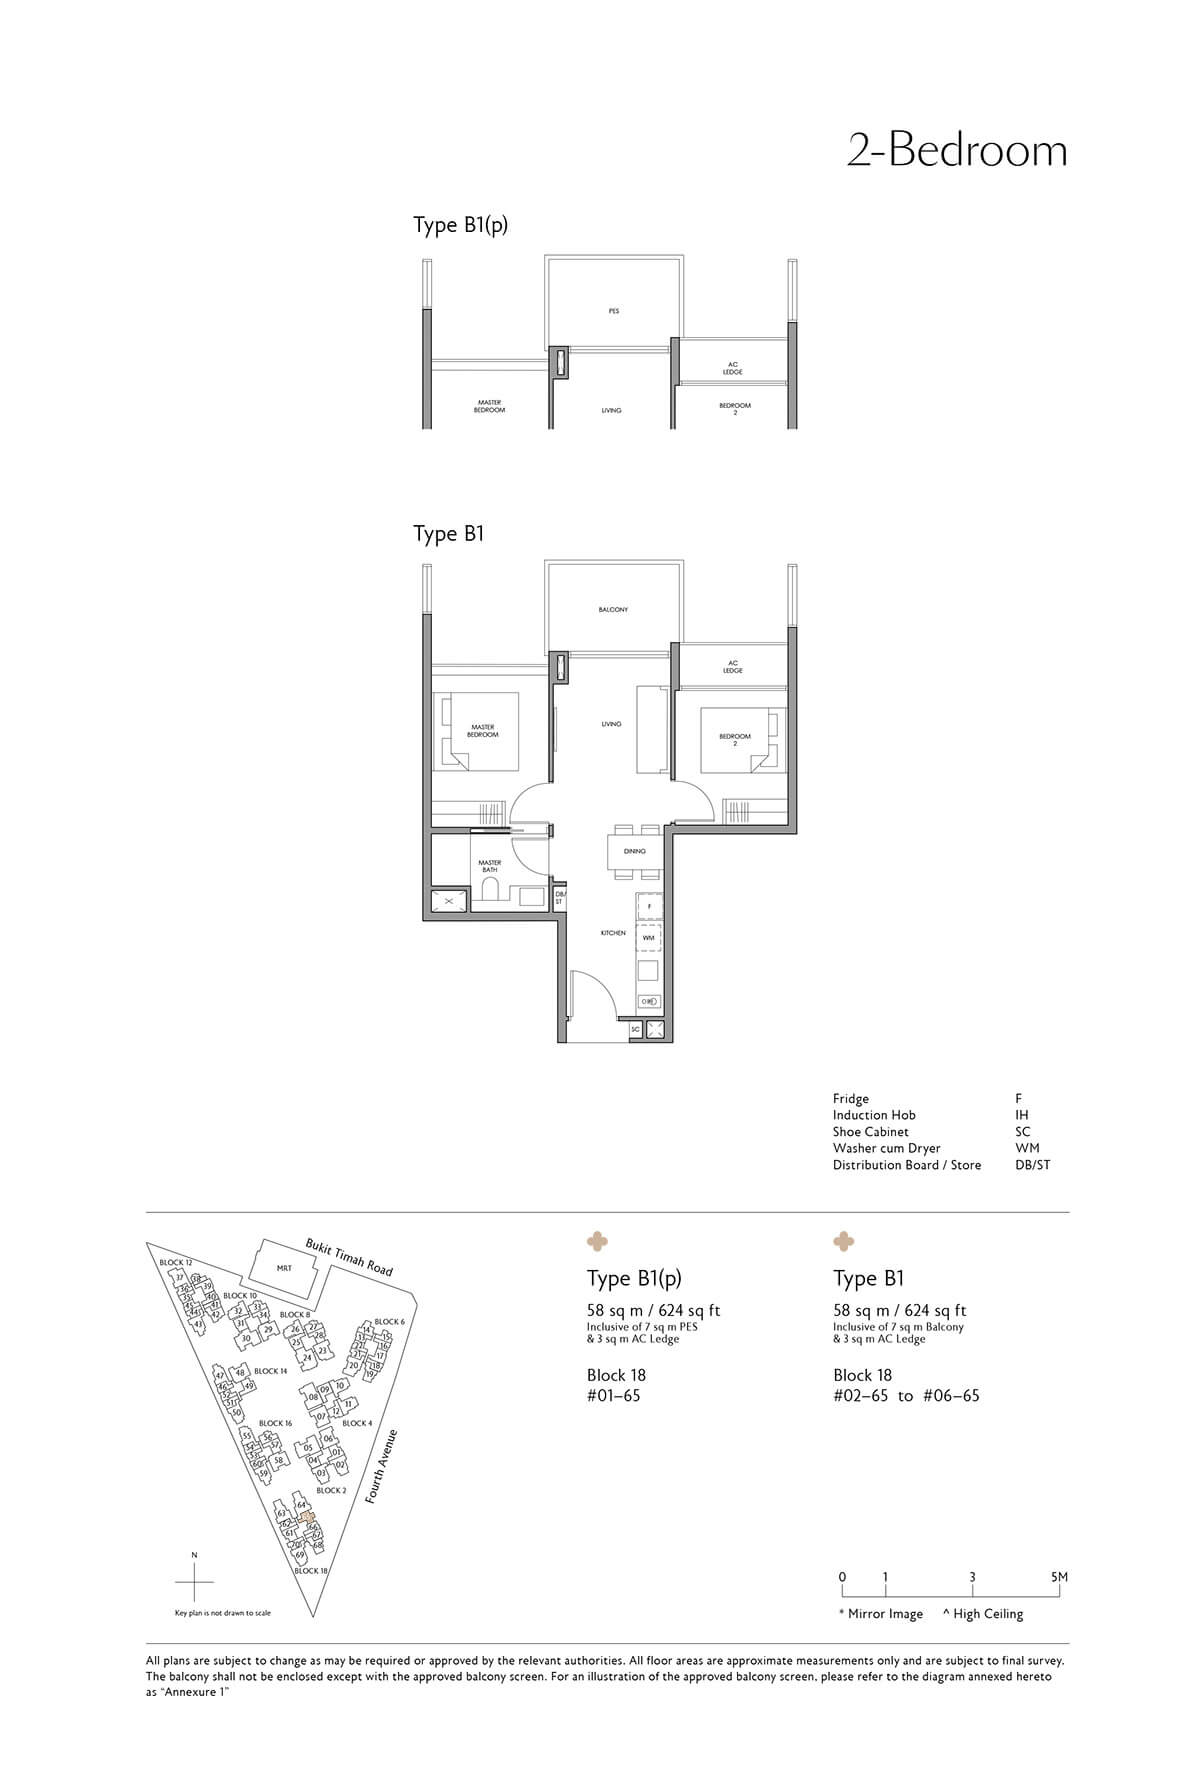 Fourth Avenue Residences Floor Plan 2 Bedroom Type B1